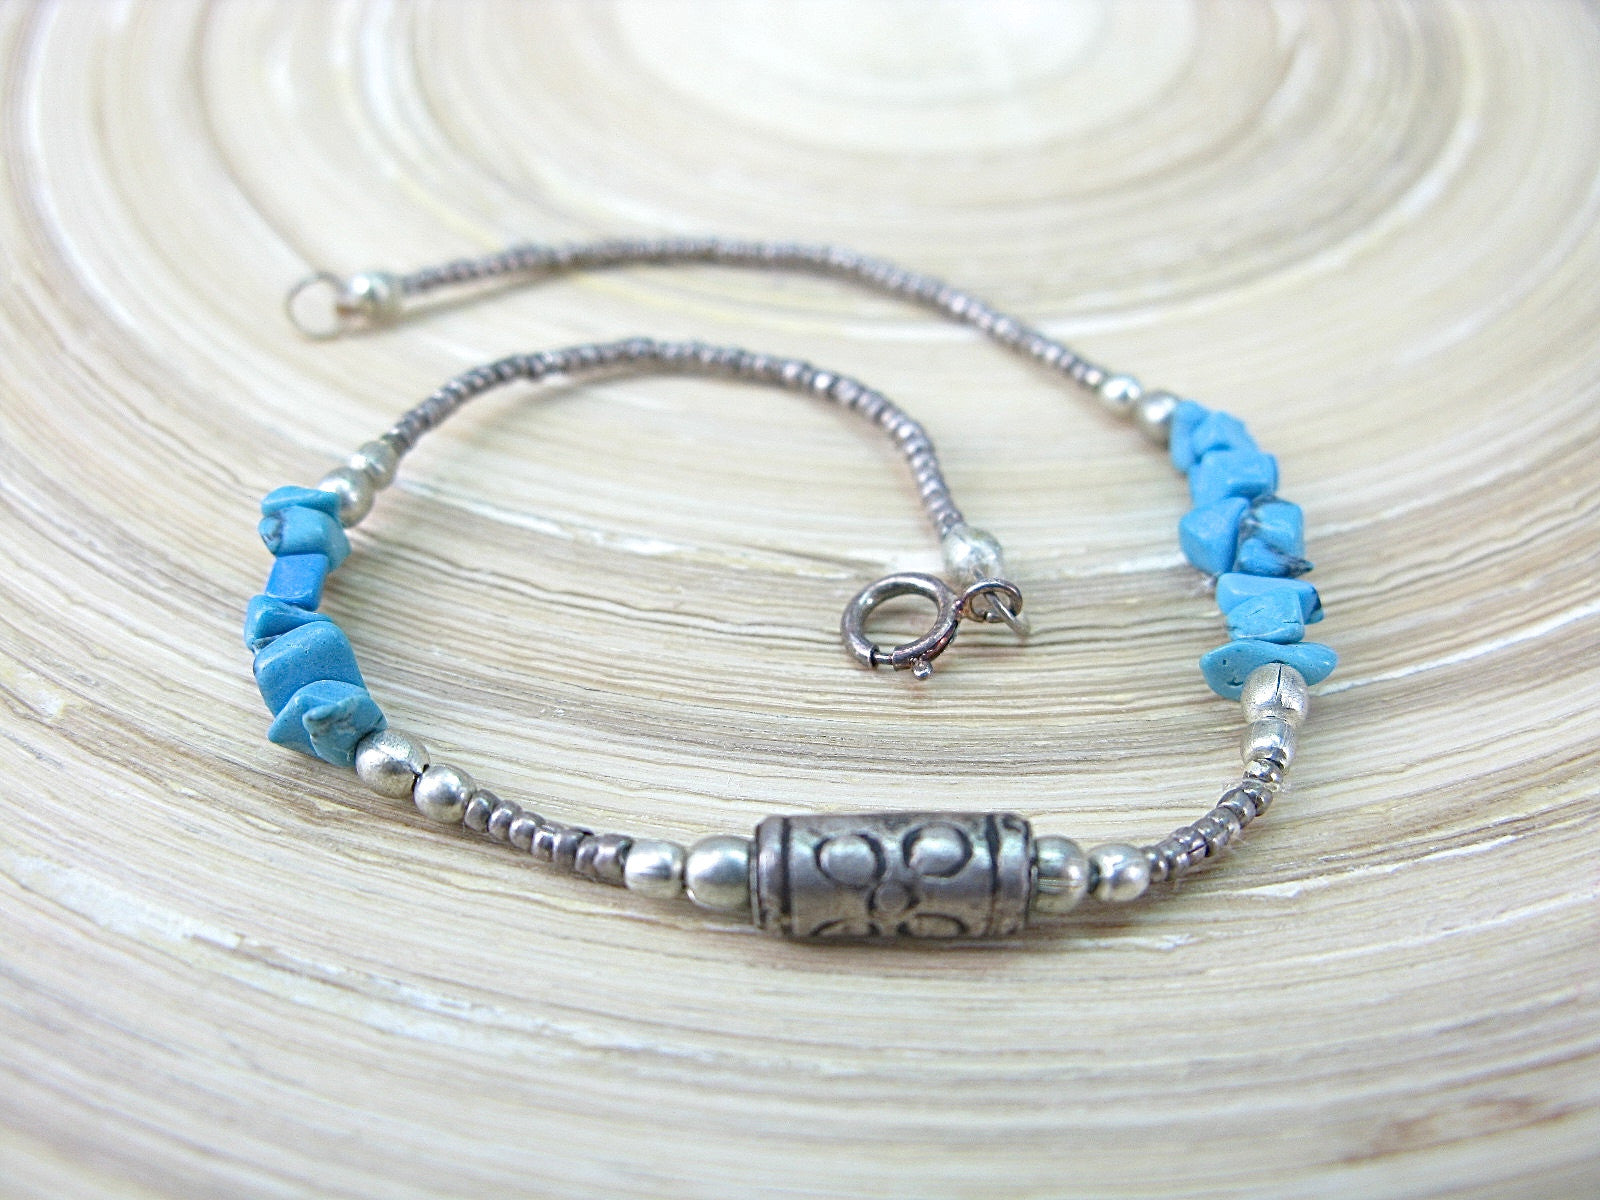 Turquoise Bead Tribal Oxidized 925 Sterling Silver Bracelet Bracelet Faith Owl - Faith Owl